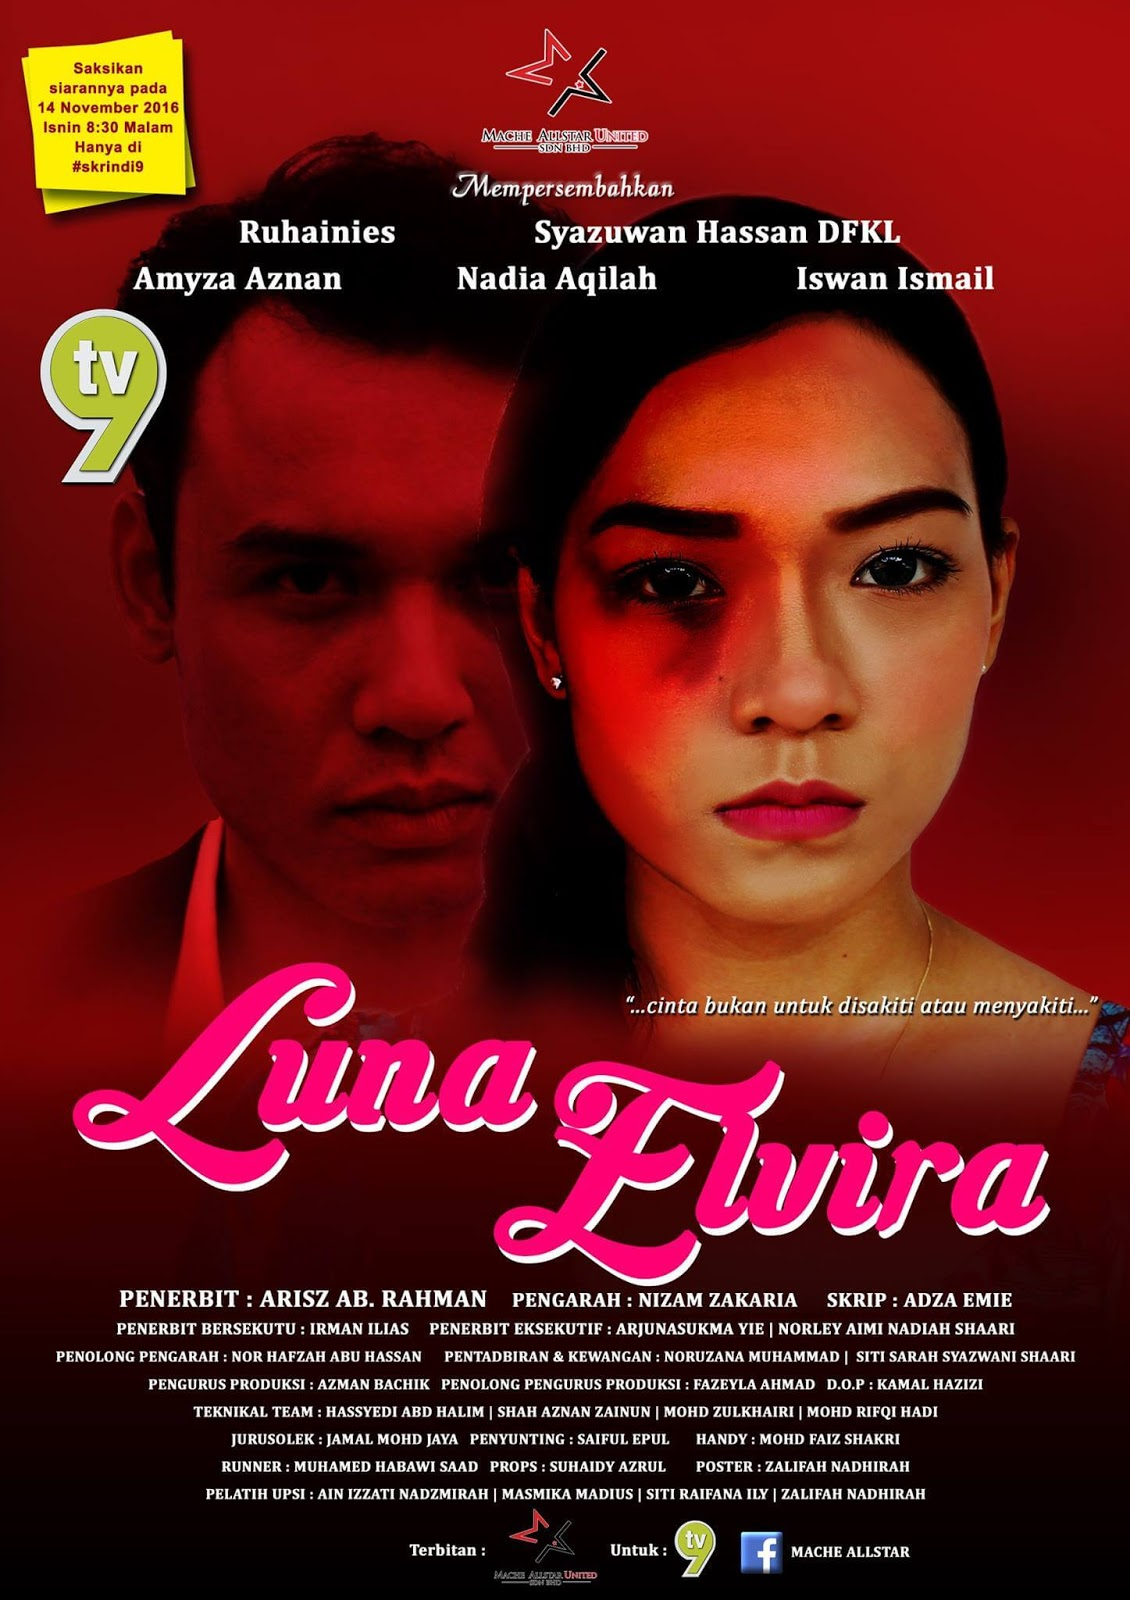 Sinopsis Telemovie Luna Elvira (TV9)